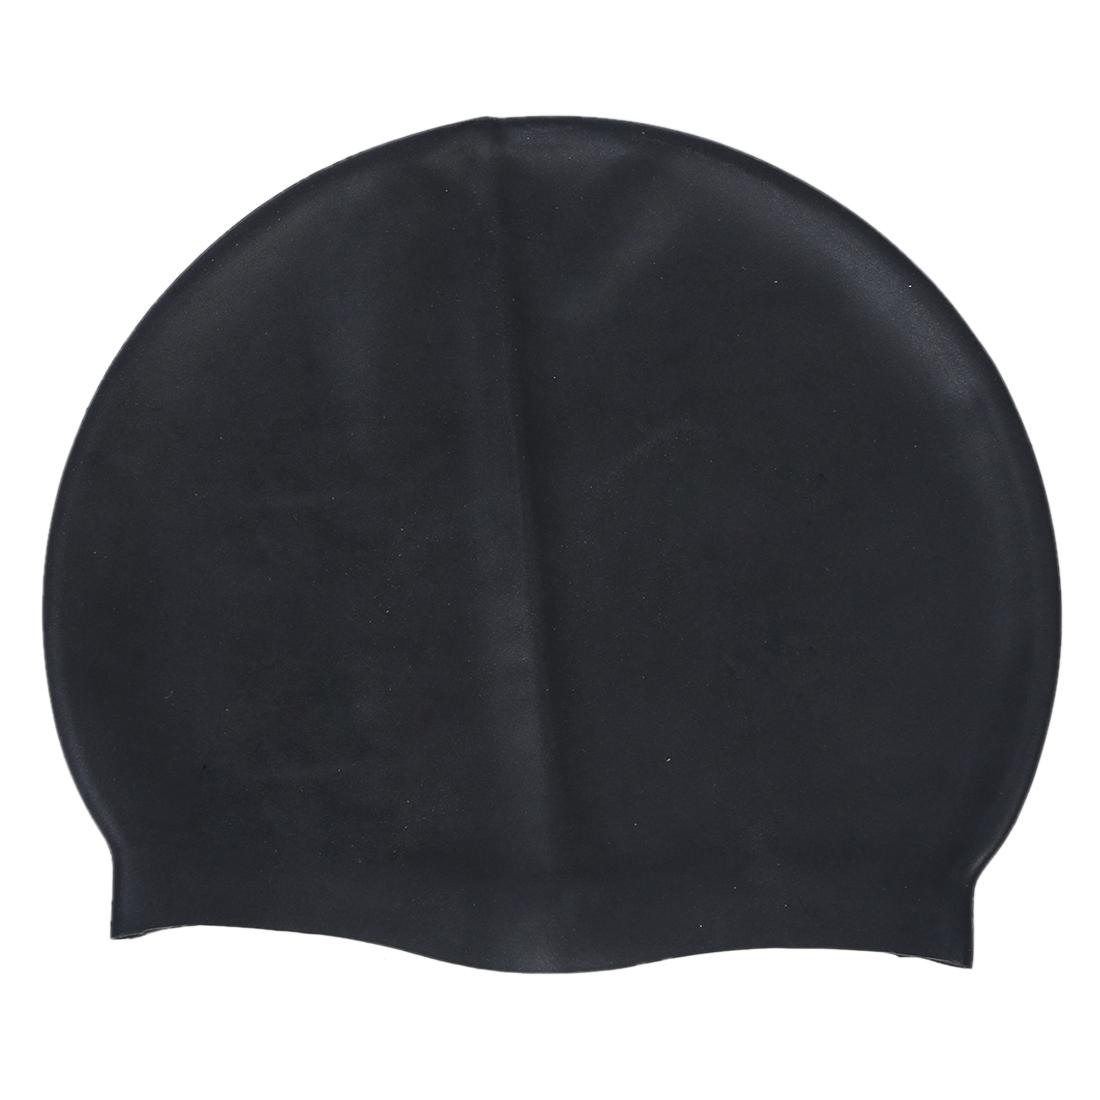 75588417bbd 2019 Black Soft Silicone Stretchable Swim Swimming Cap Hat For Adults From  Simmer